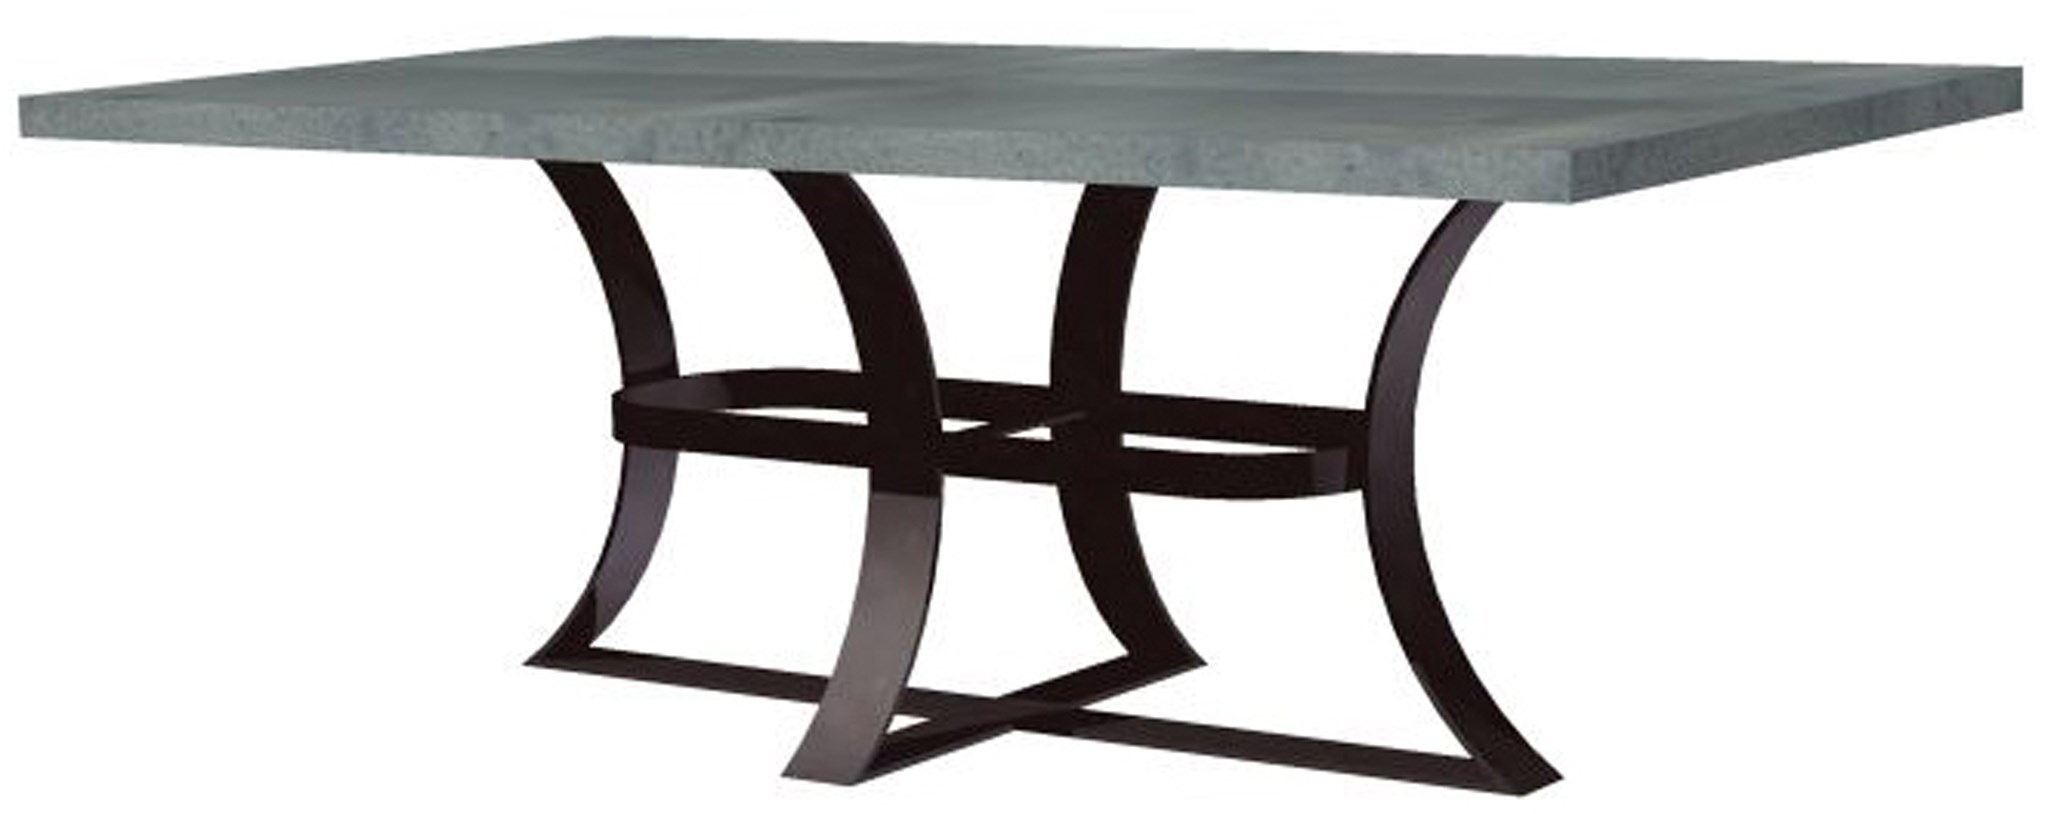 Avery Dining Table With Rectangular Hammered Zinc Top Within 2018 Avery Rectangular Dining Tables (View 8 of 25)